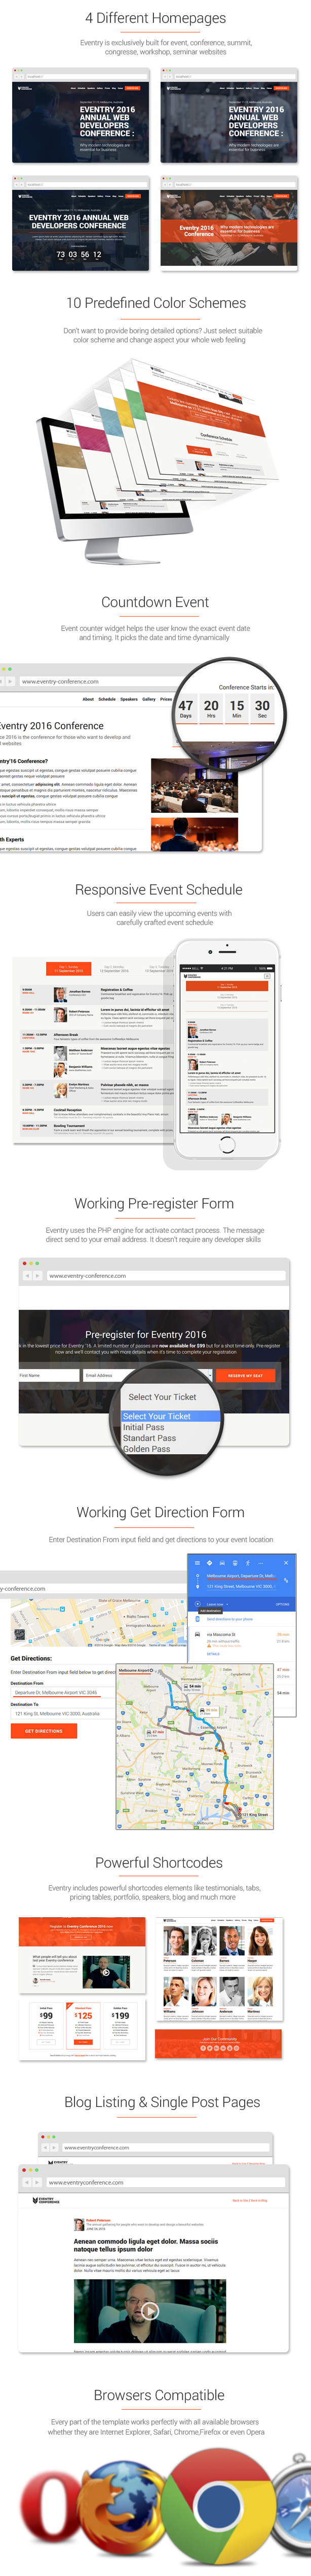 Eventry - Conference & Event HTML5 Landing Page Template